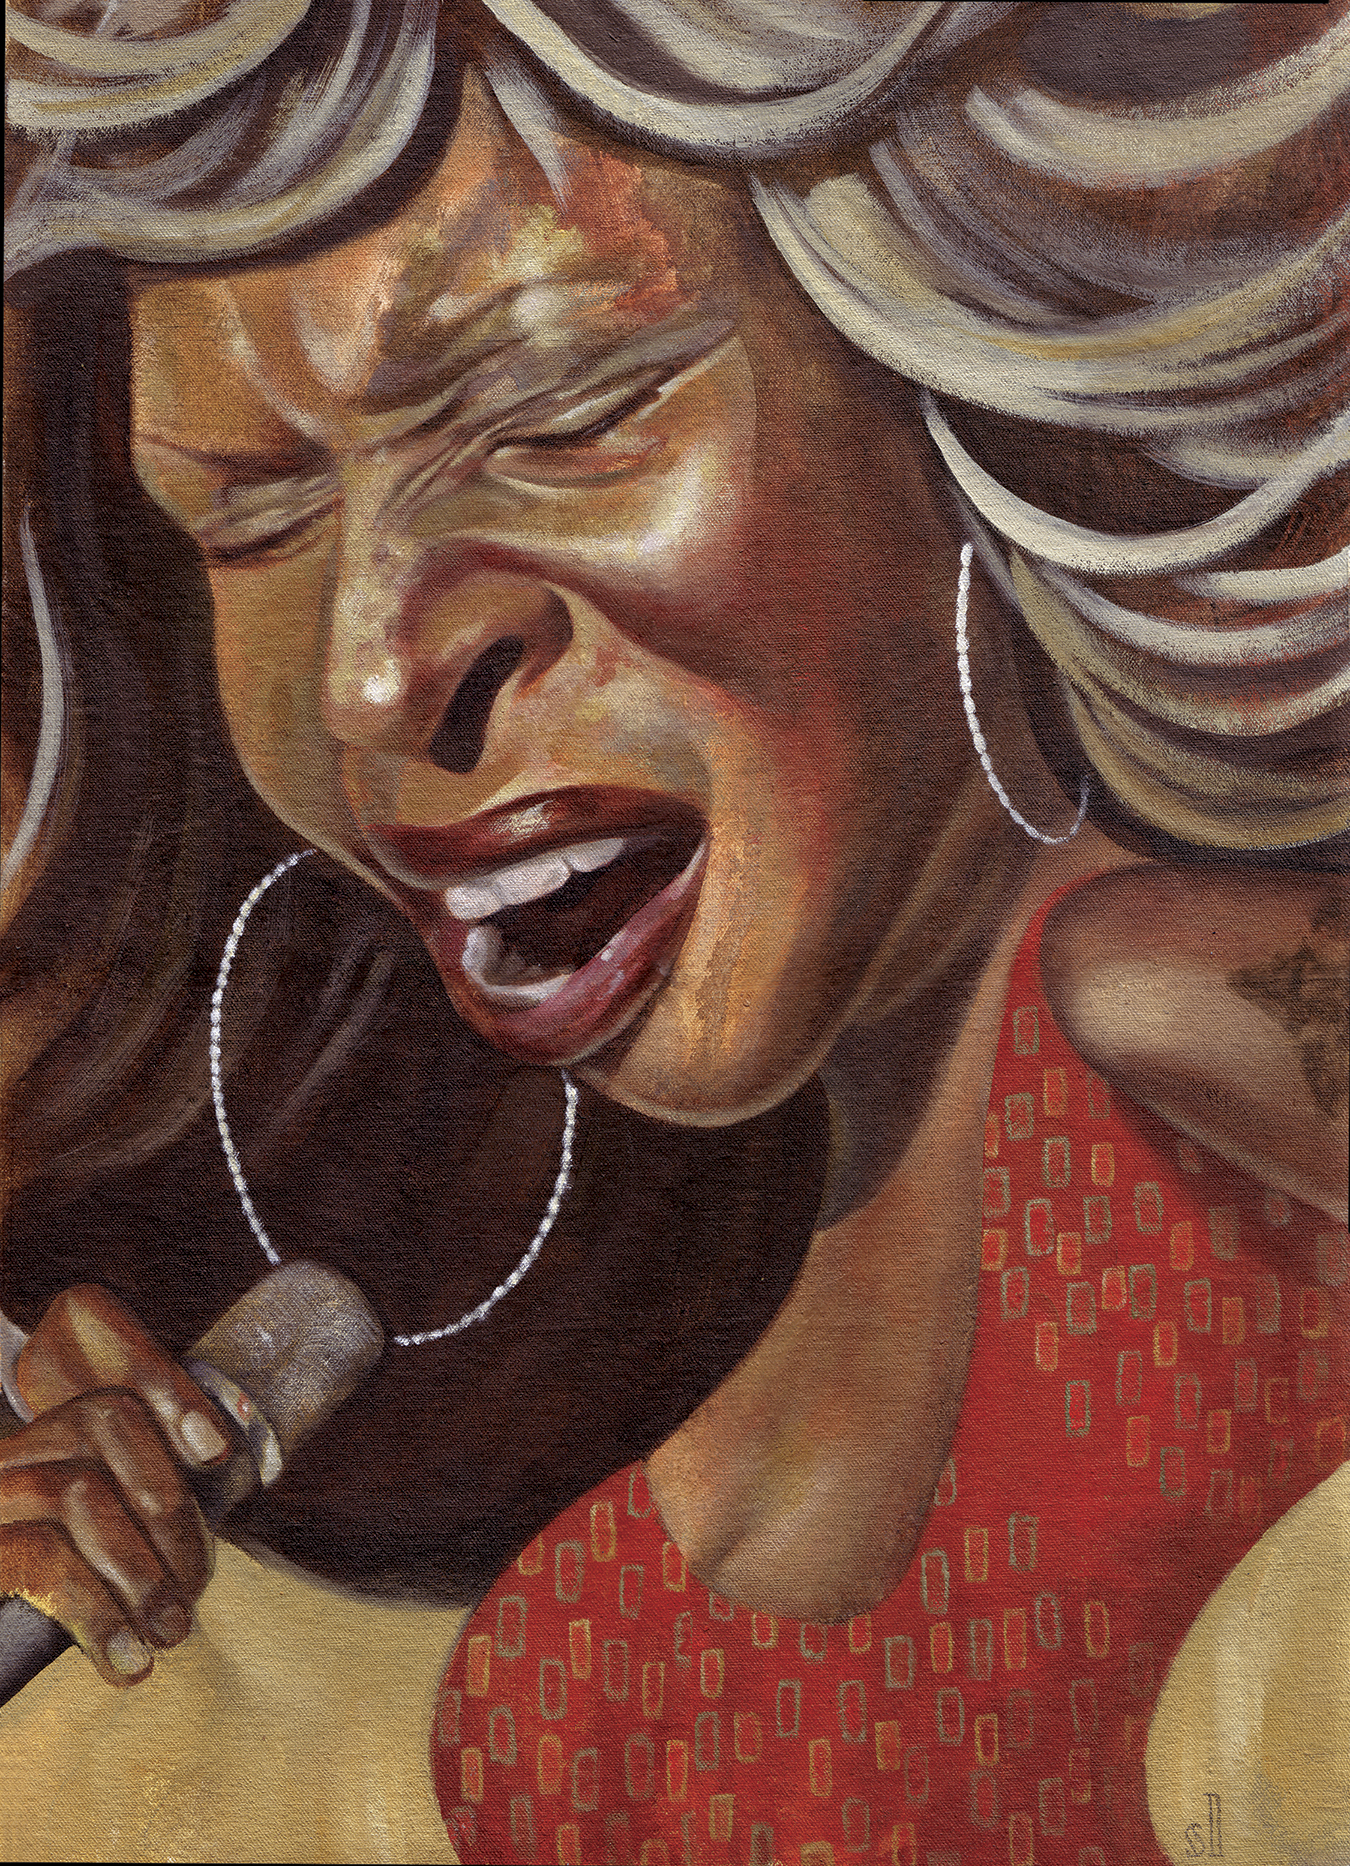 Mary J. Blige / Private commission